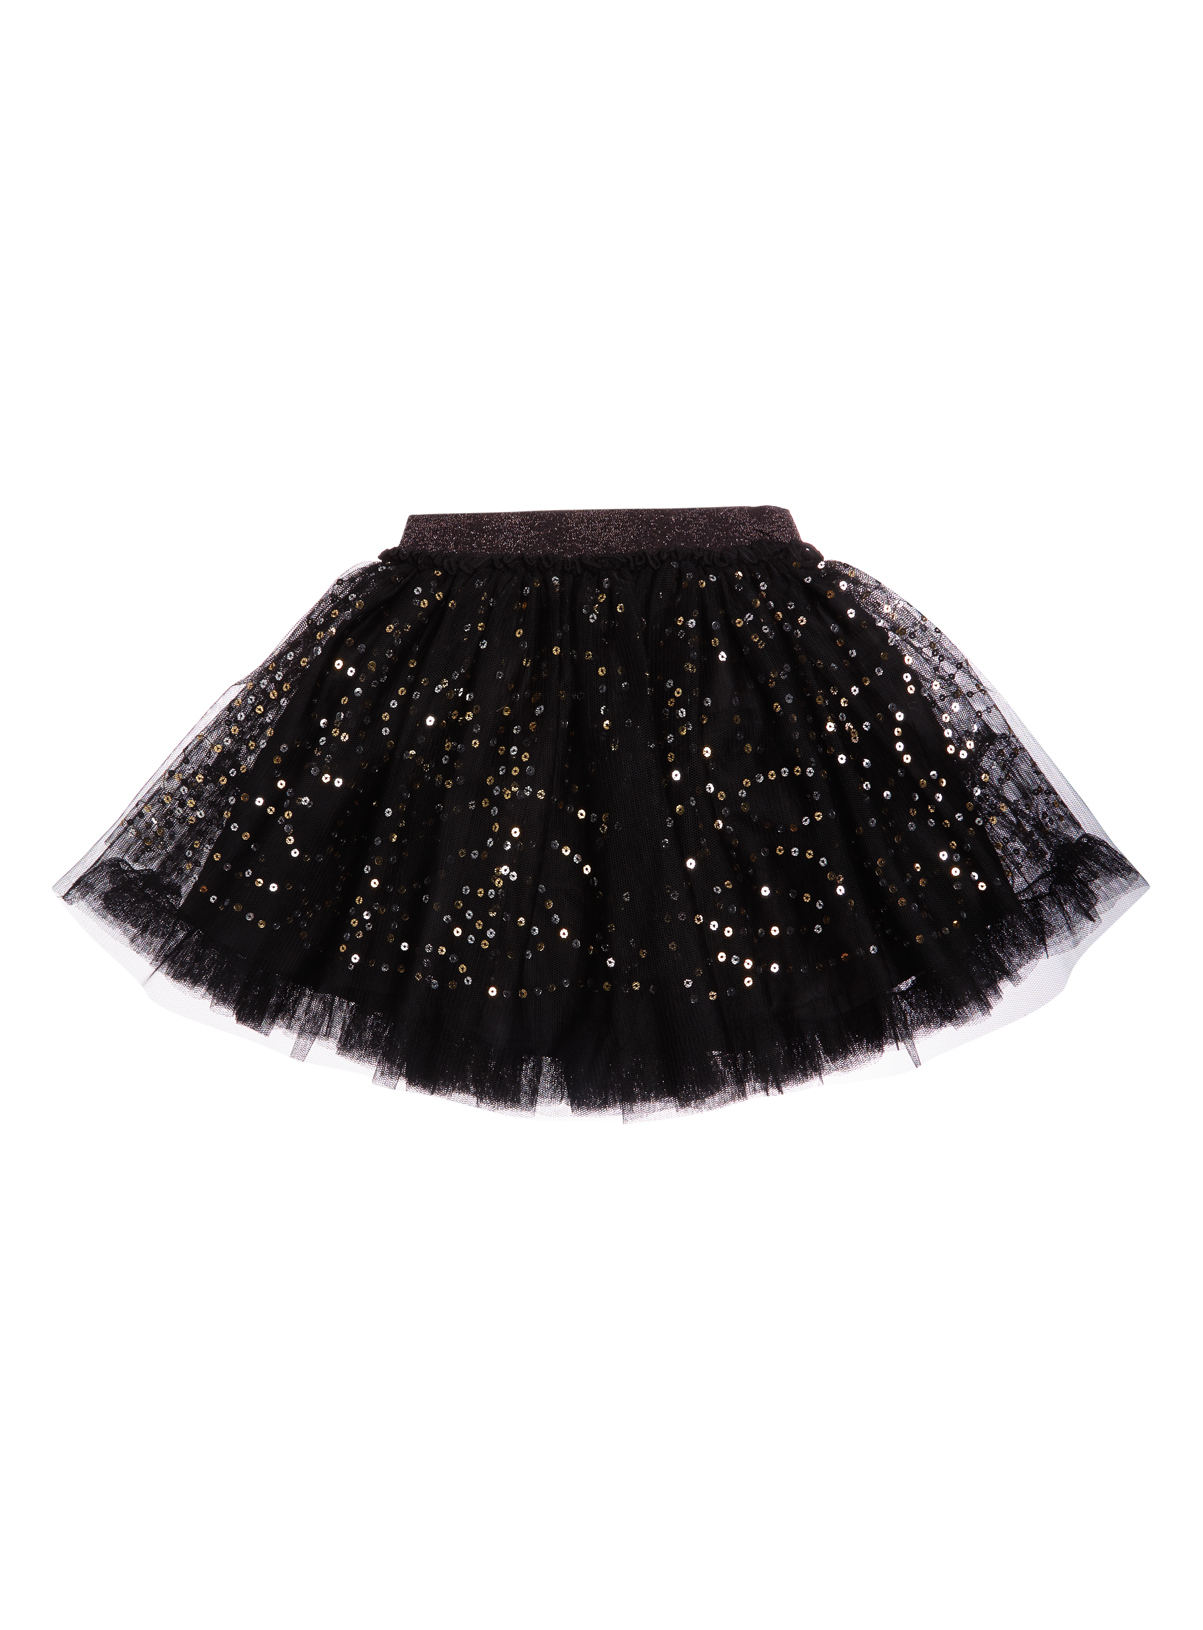 All Girl's Clothing Girls Black Net Sequin Skirt (3-12 years) | Tu ...